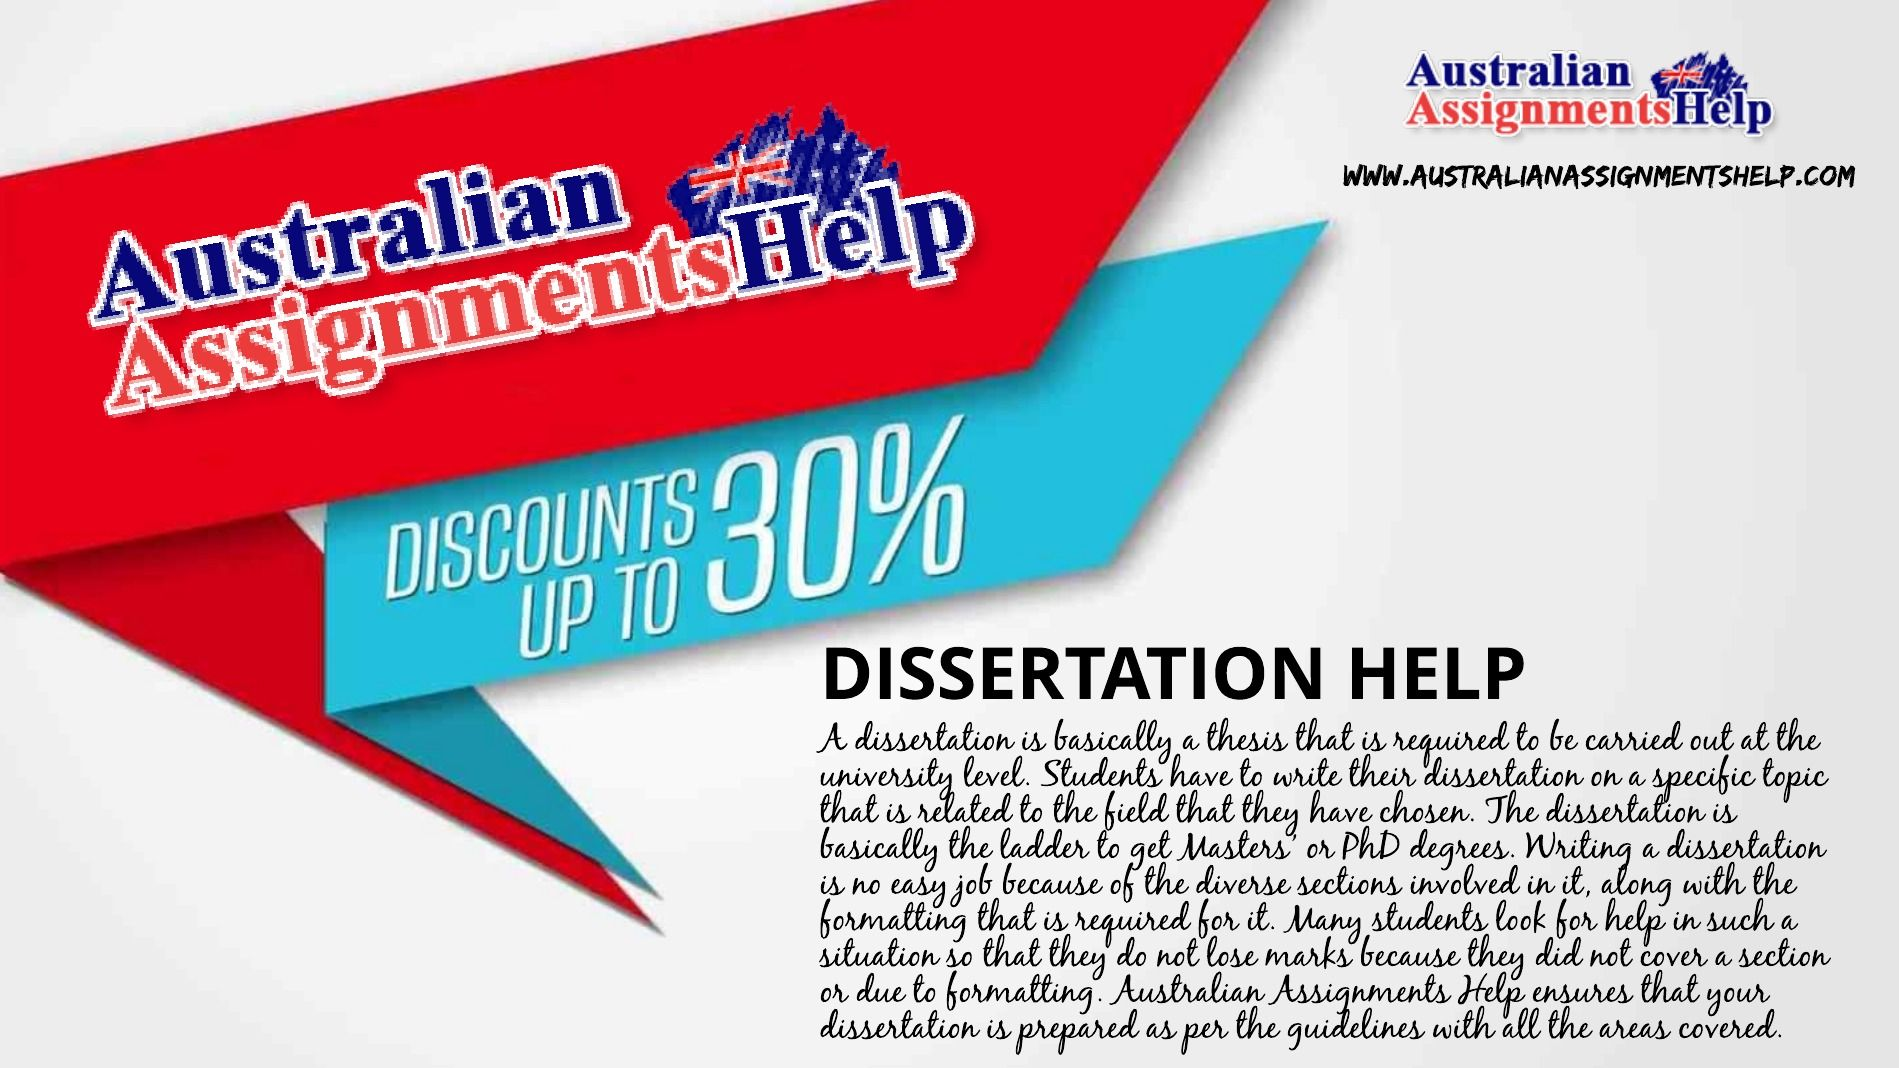 Dissertation writing services near me